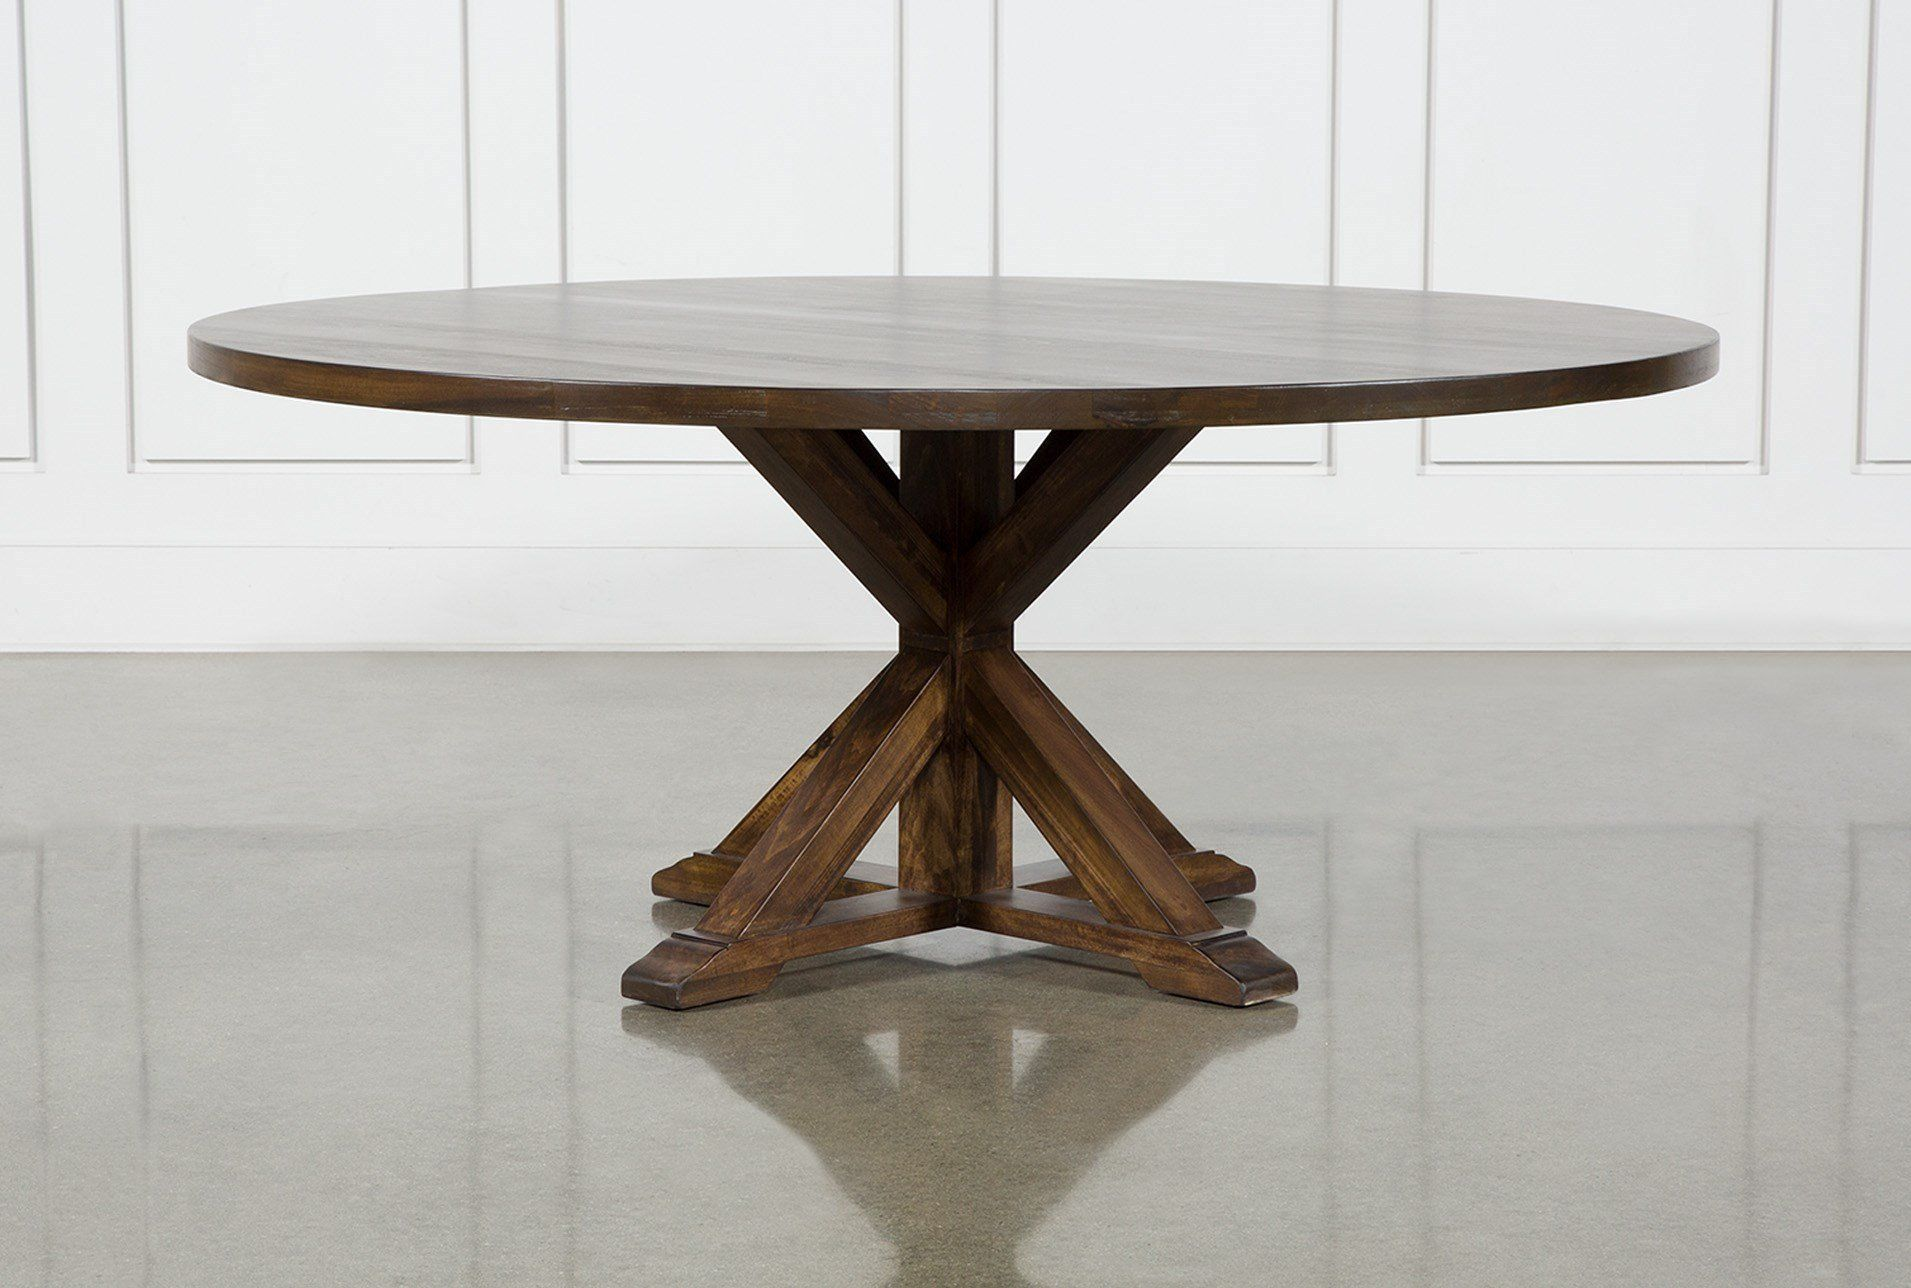 La Phillippe Cognac Round Dining Table Brown 1550 Dining